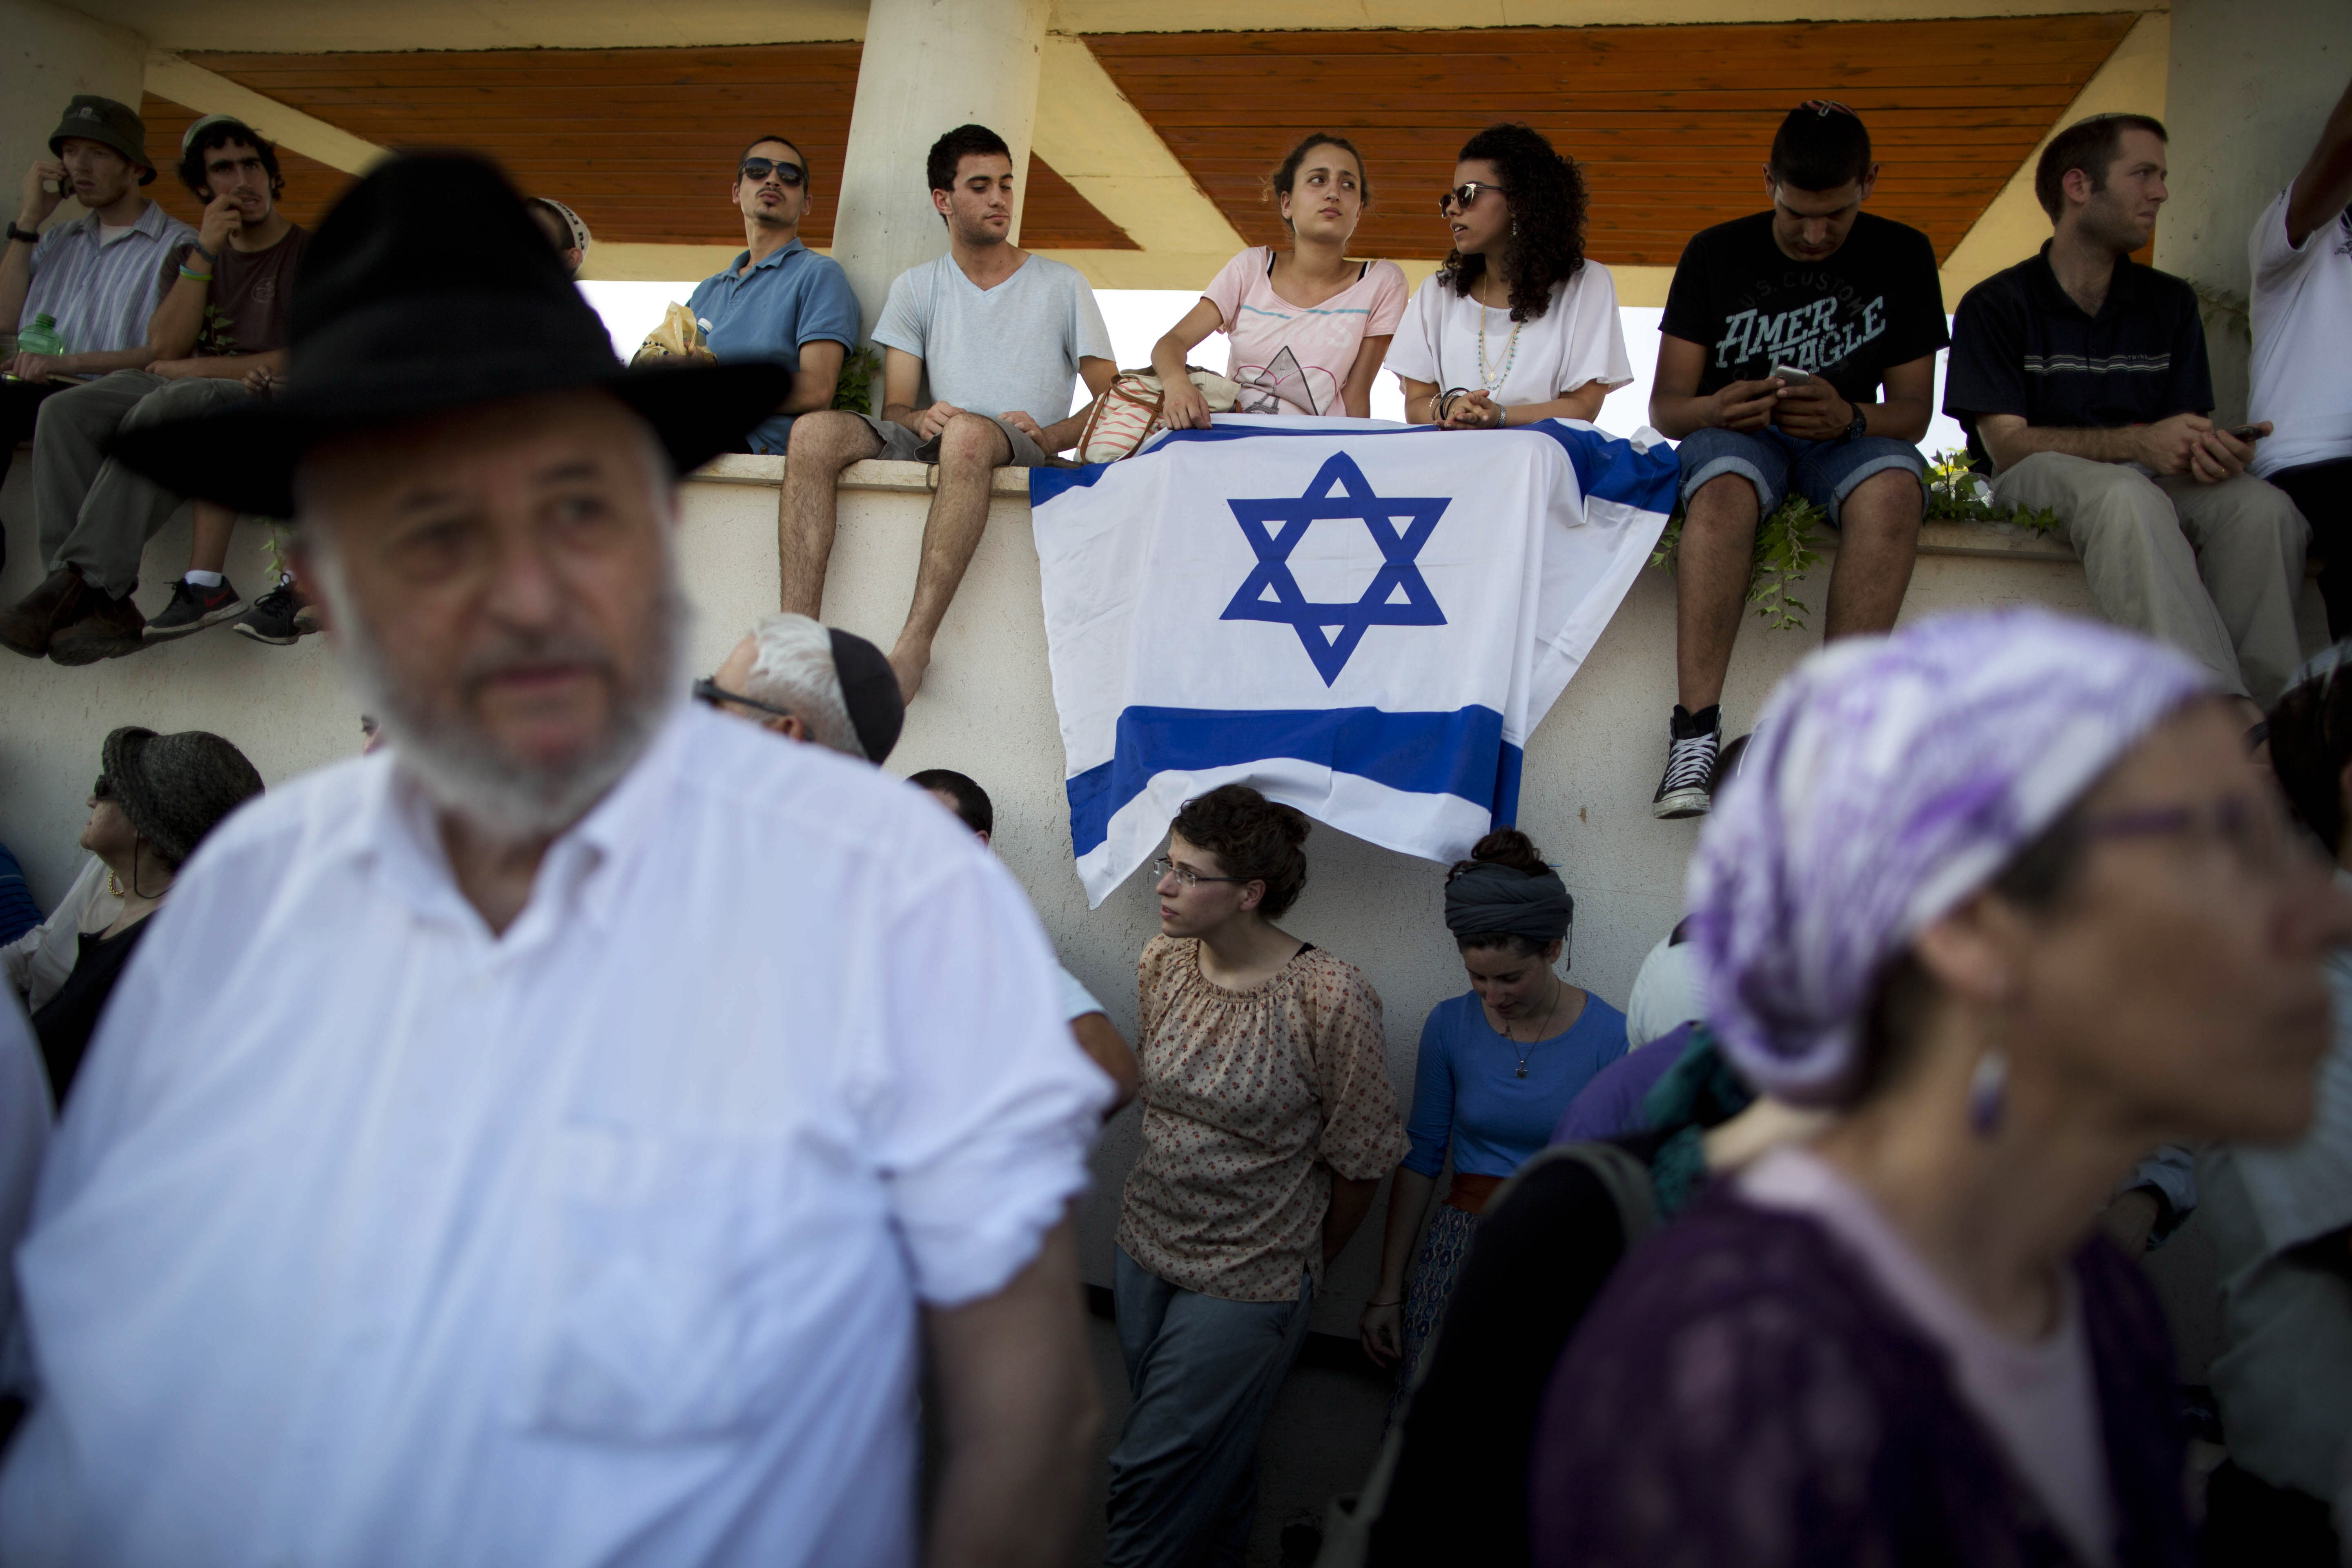 """FILE - In this July 1, 2014 file photo, Israelis attend the funeral of three Israeli teenagers, Eyal Yifrah, 19, Gilad Shaar, 16, and Naftali Fraenkel, a 16-year-old with dual Israeli-American citizenship, in the Israeli town of Modiin. HBO's new docudrama series about the killings of four Israeli and Palestinian teenagers, which set off a cascade of events leading to the 2014 Gaza war, is set to air next week and is likely to reopen wounds on both sides of the conflict. """"Our Boys,"""" co-created by Palestinian and Israeli filmmakers, presents a dramatized rendition of the chaotic events of that June following the abduction of three Israeli teens in the West Bank. (AP Photo/Oded Balilty, File)"""